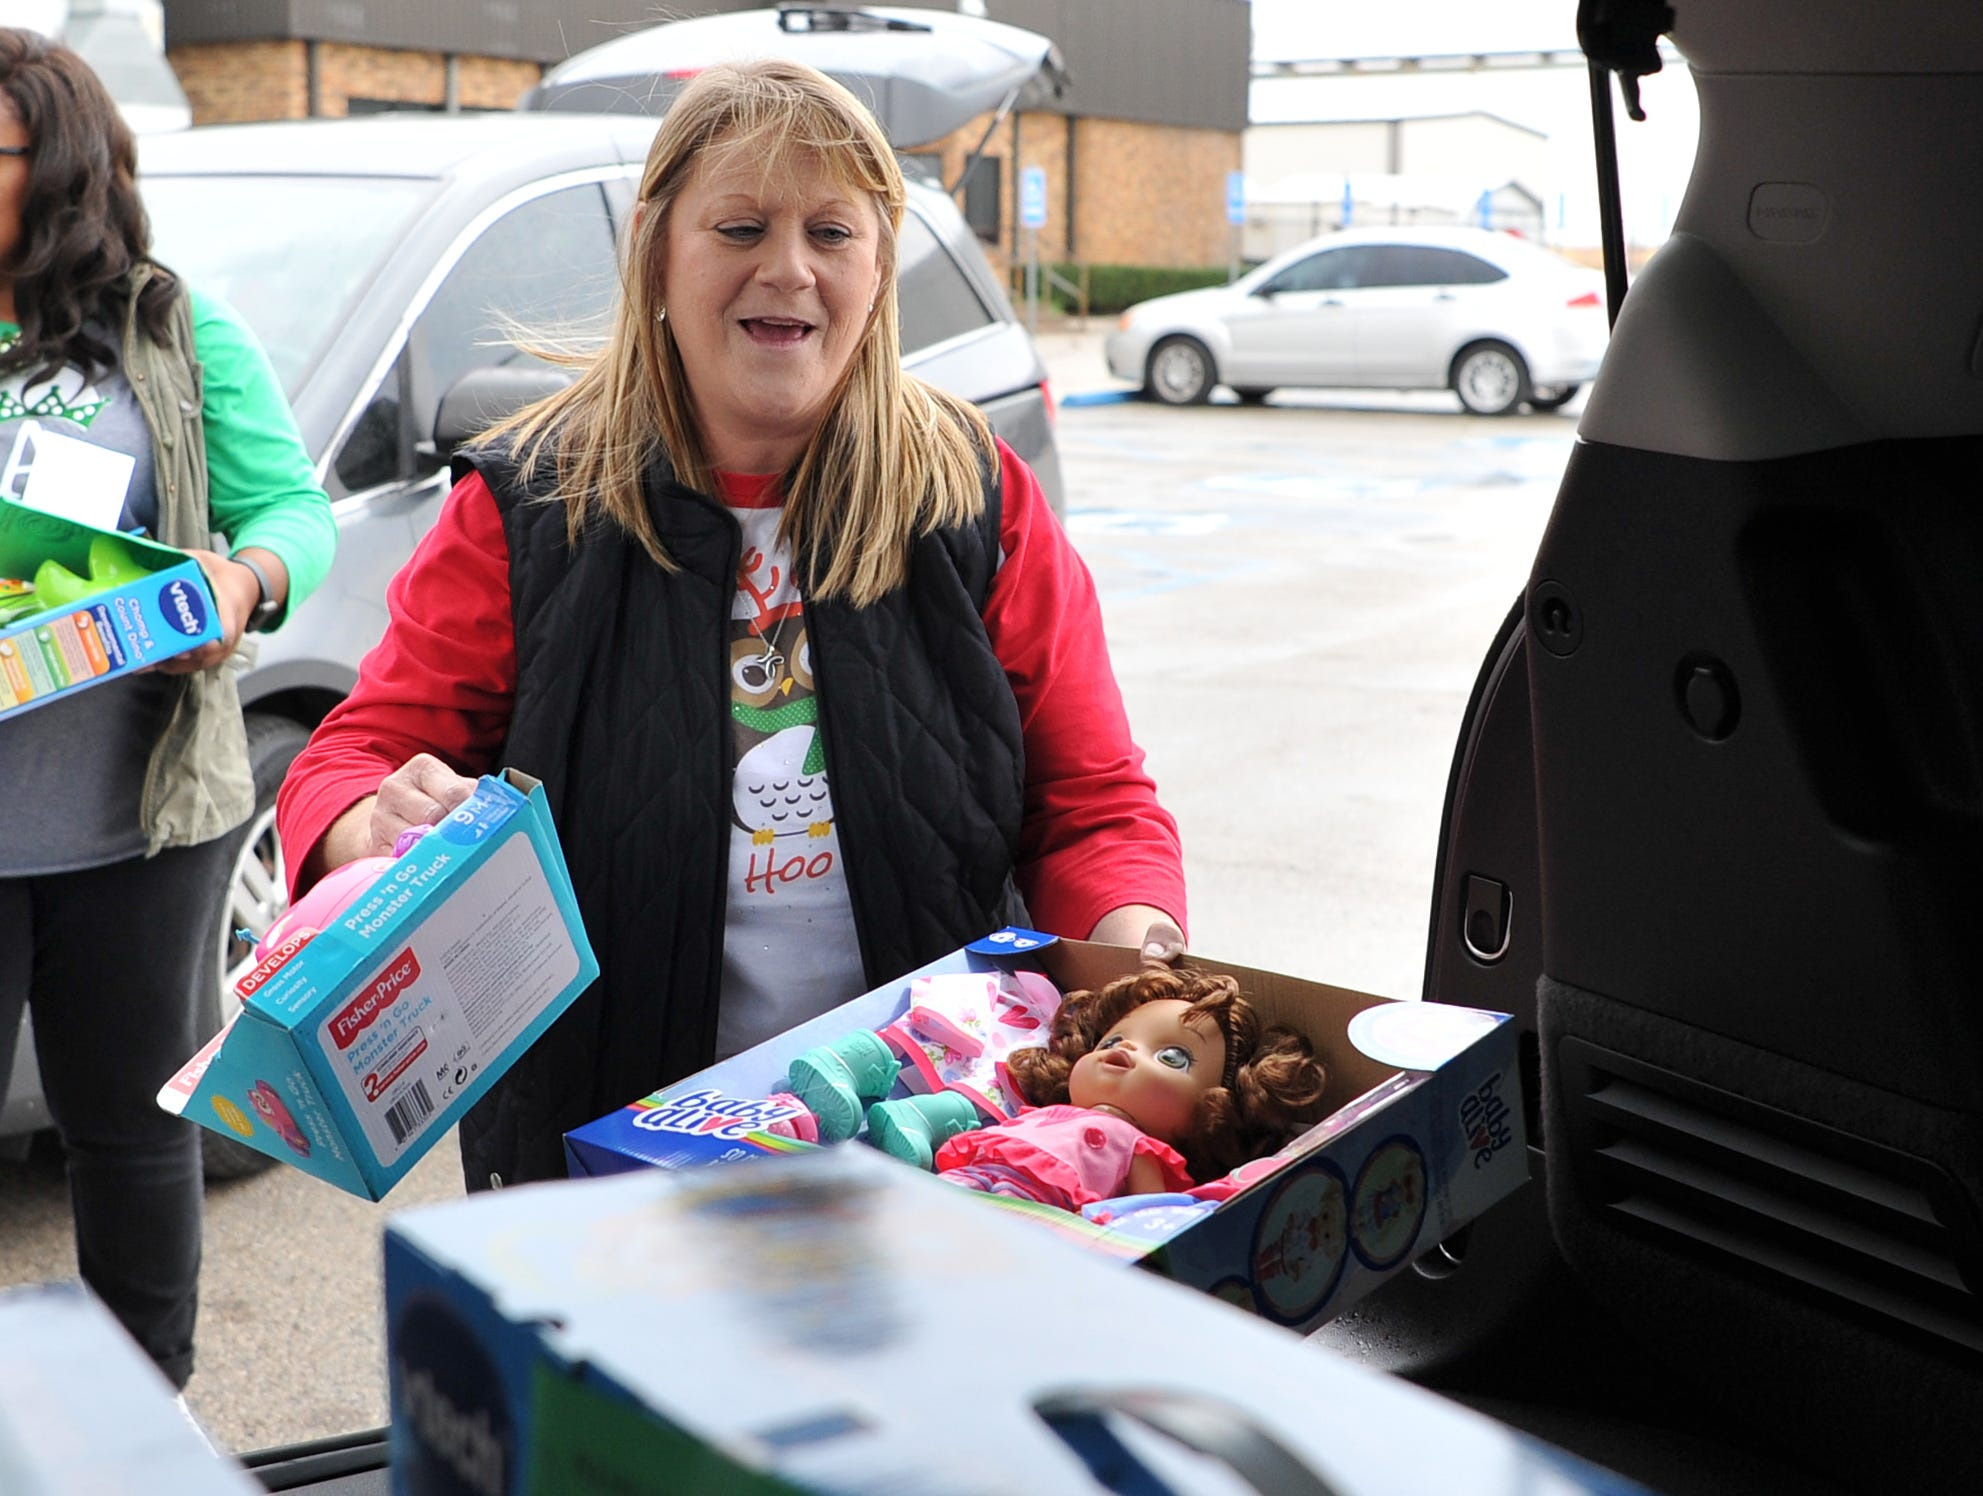 Child Care Partners Kelly Davis helps load donated toys from Alcoa employees Thursday afternoon. Davis said a phone 16-years-ago to a human resource specialist Elissa Depew at Alcoa has put a lot of smiles on local Child Care Partners kids' faces during the Christmas season.